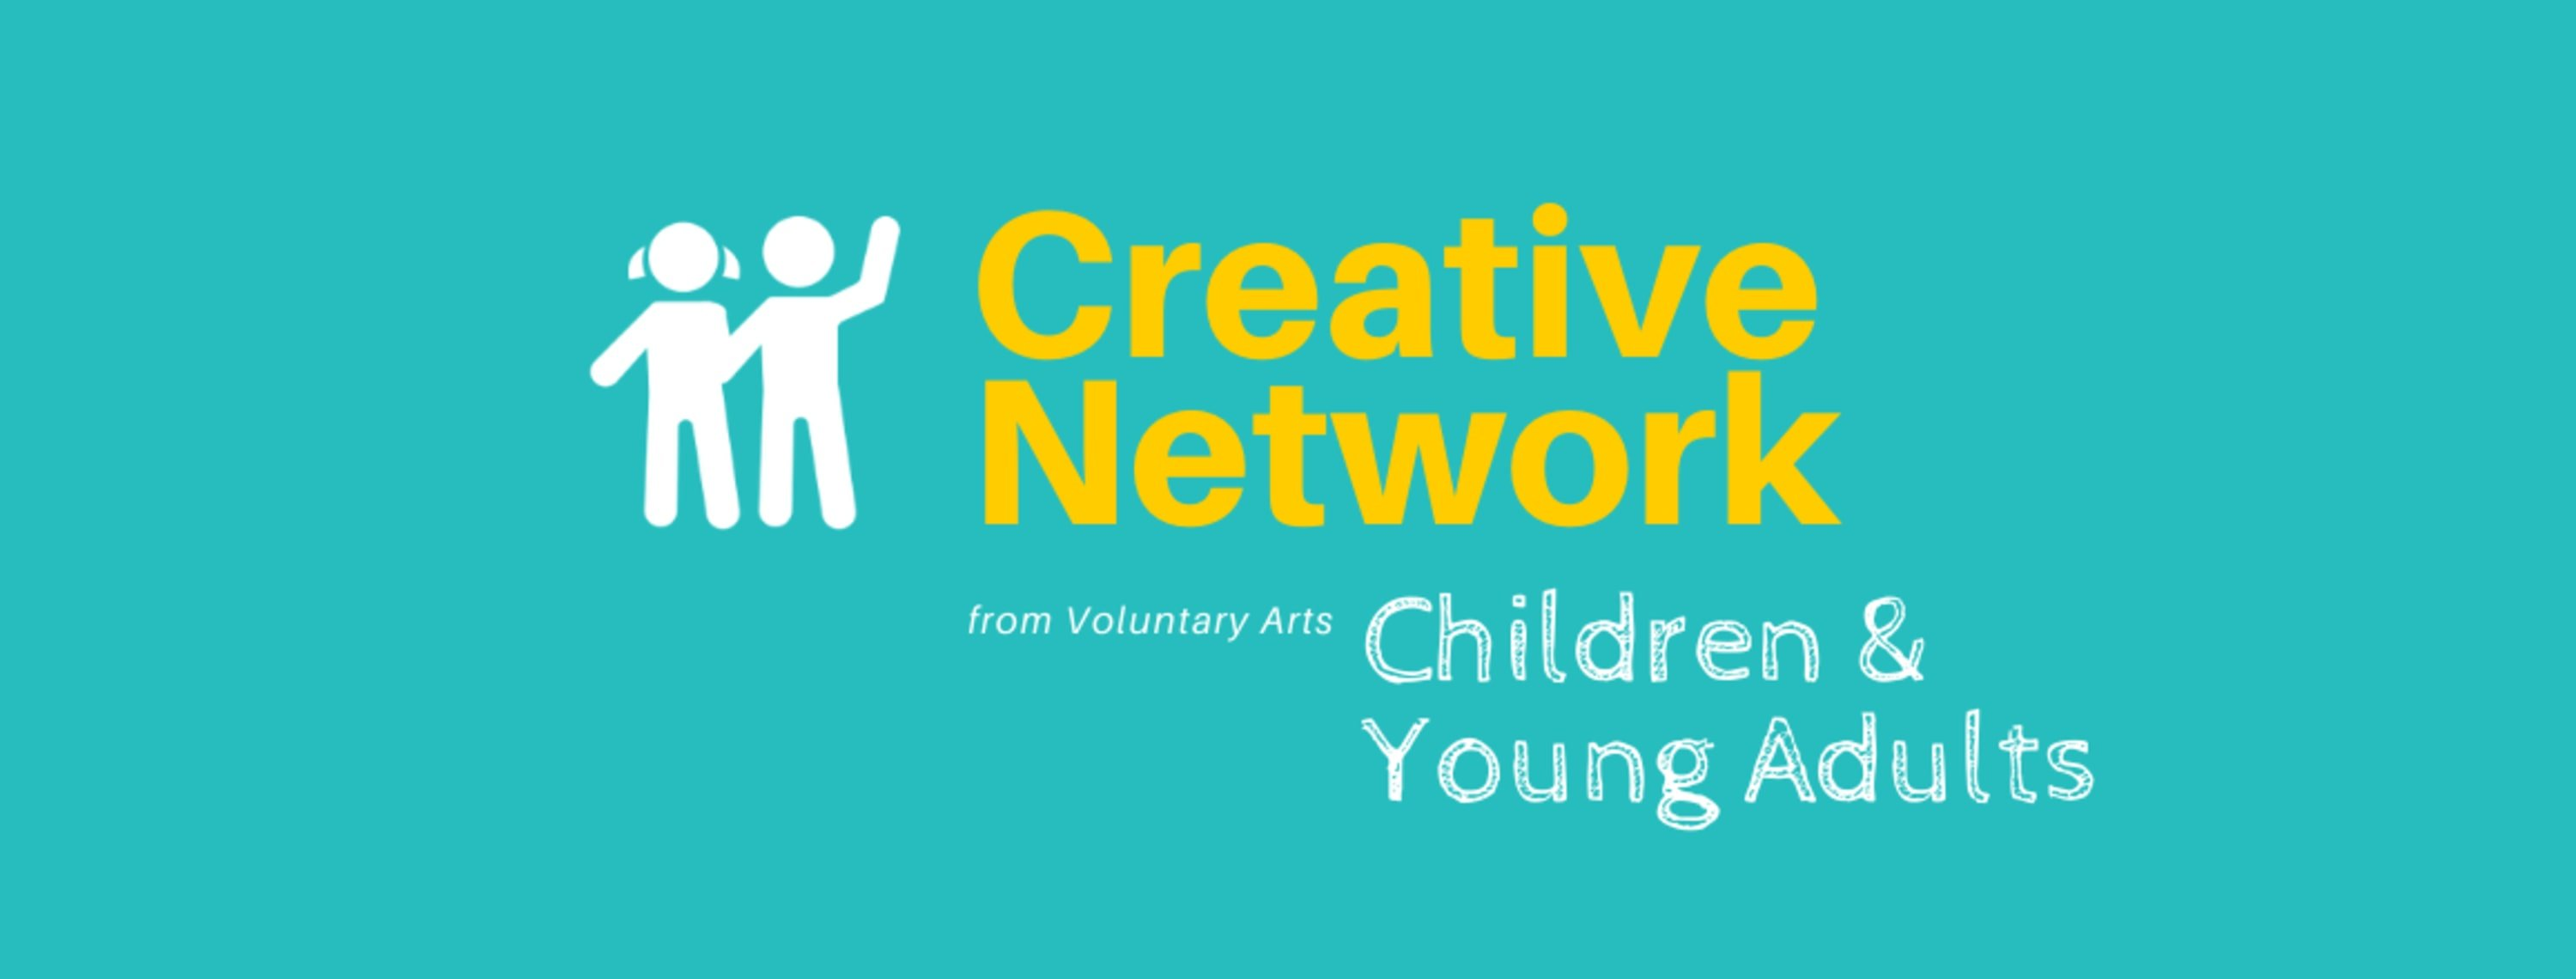 #CreativeNetwork - Children & Young Adults